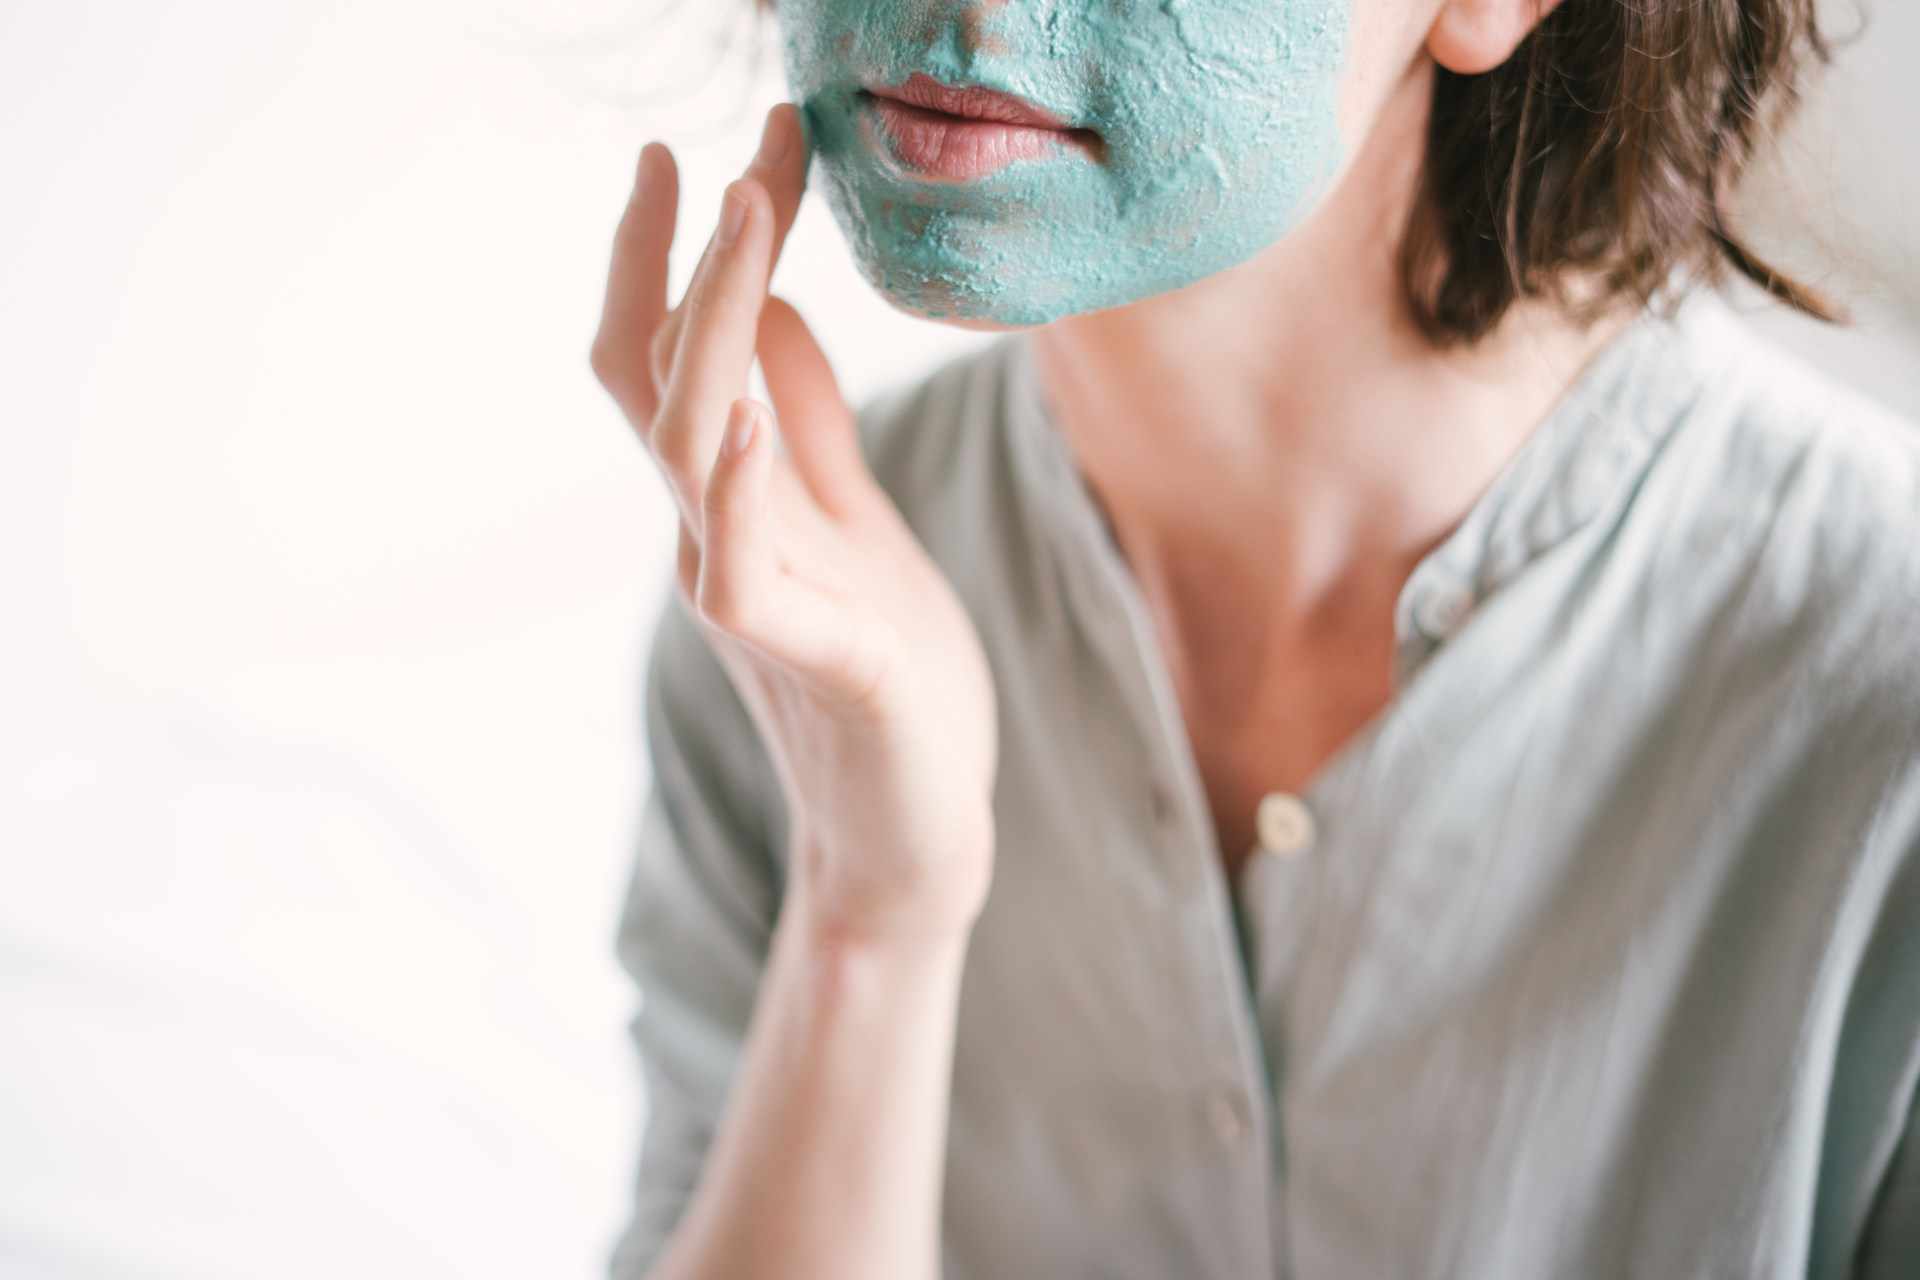 Pamper your mum this Mother's Day with some DIY face masks!